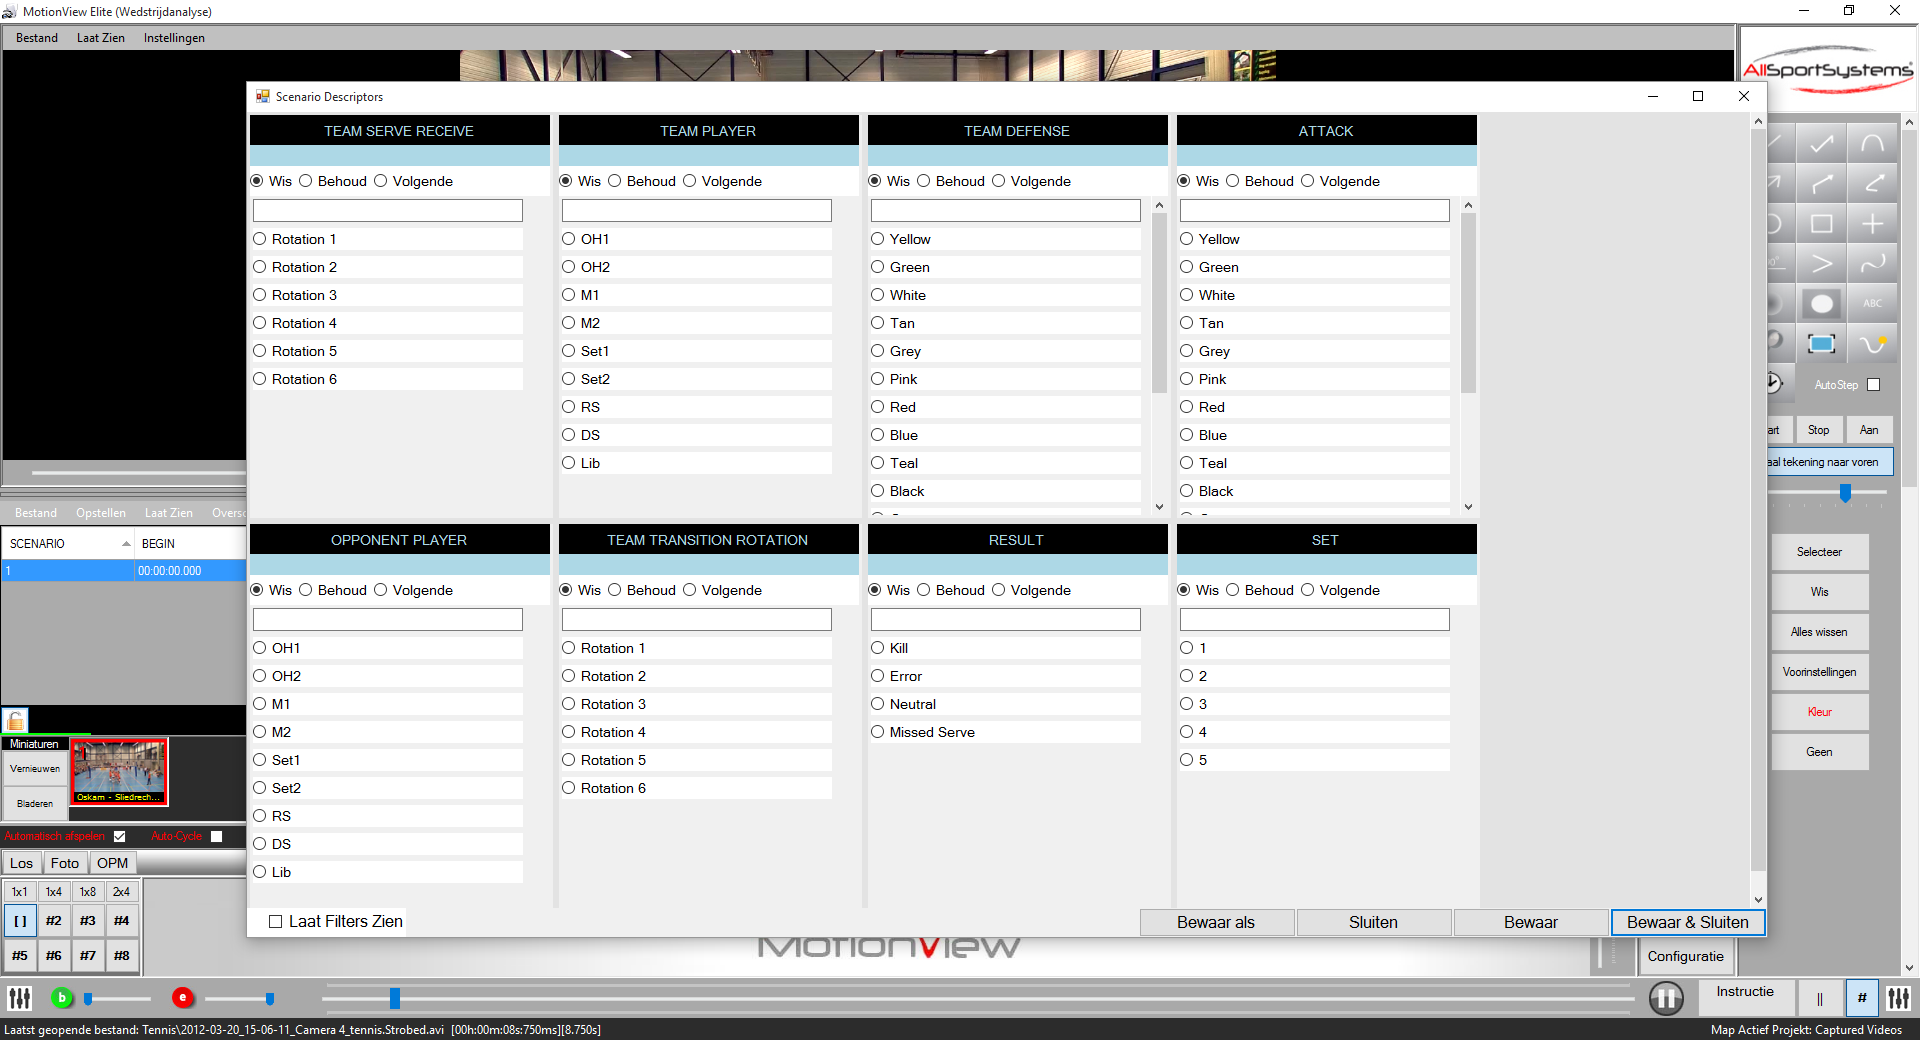 MotionView - Volleybal - Descriptor Settings